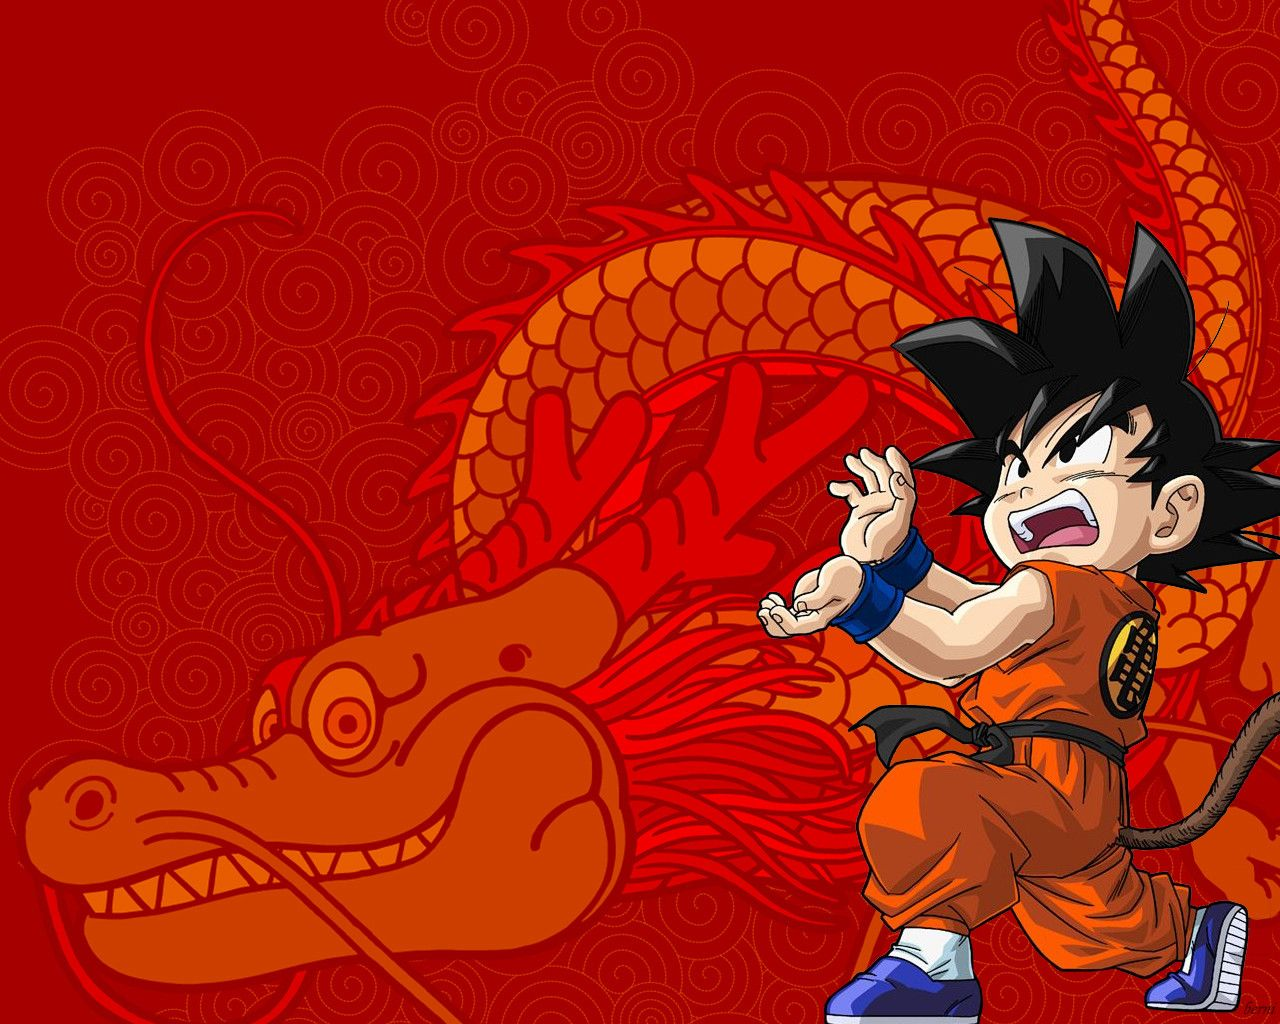 Best Goku Wallpaper Hd For Pc Dragon Ball Z Hd Wallpapers